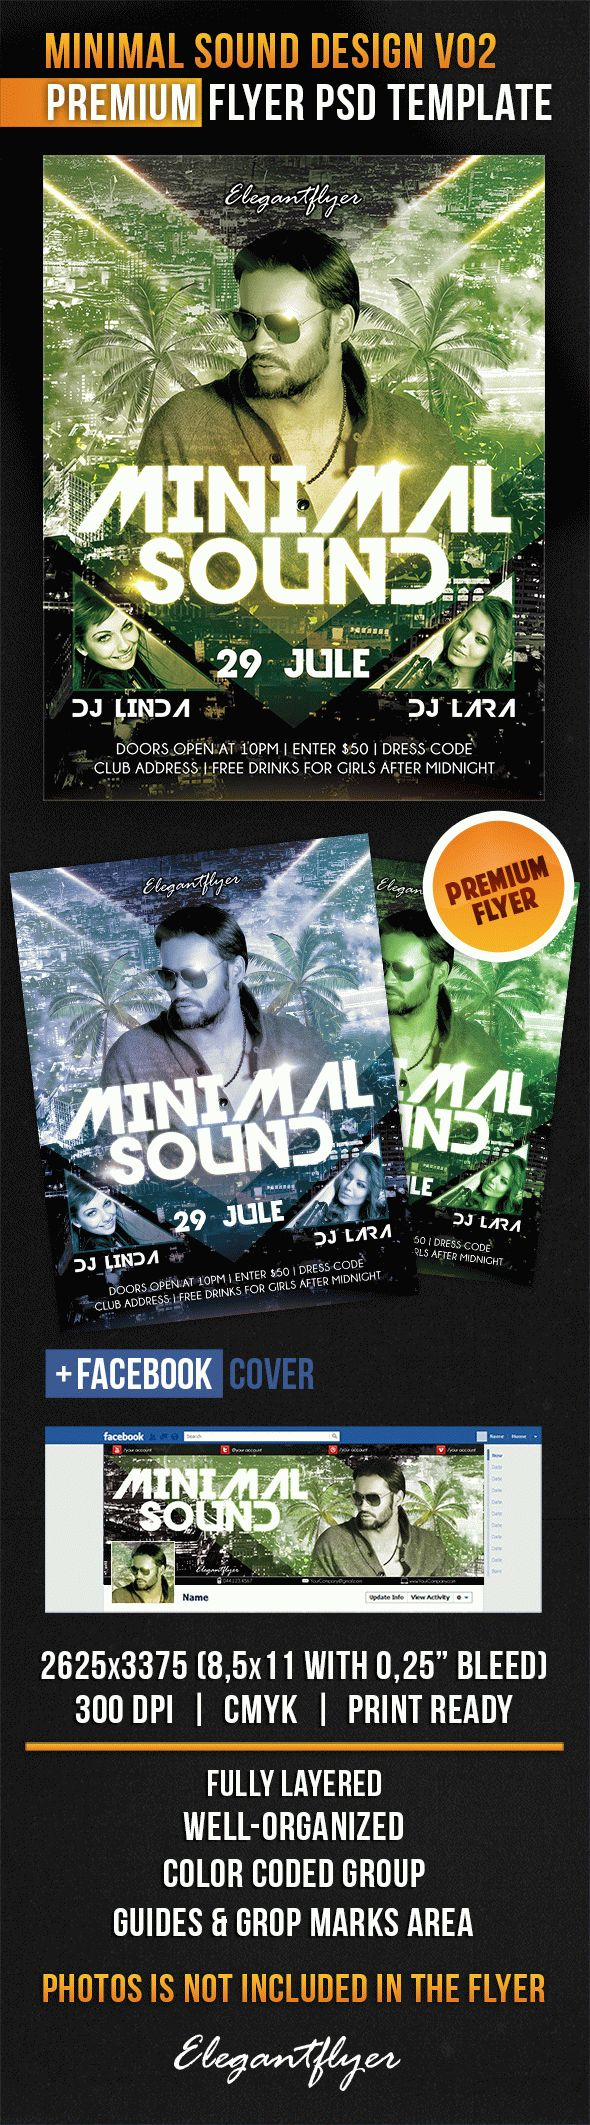 Minimal Sound Design V02 – Flyer PSD Template + Facebook Cover